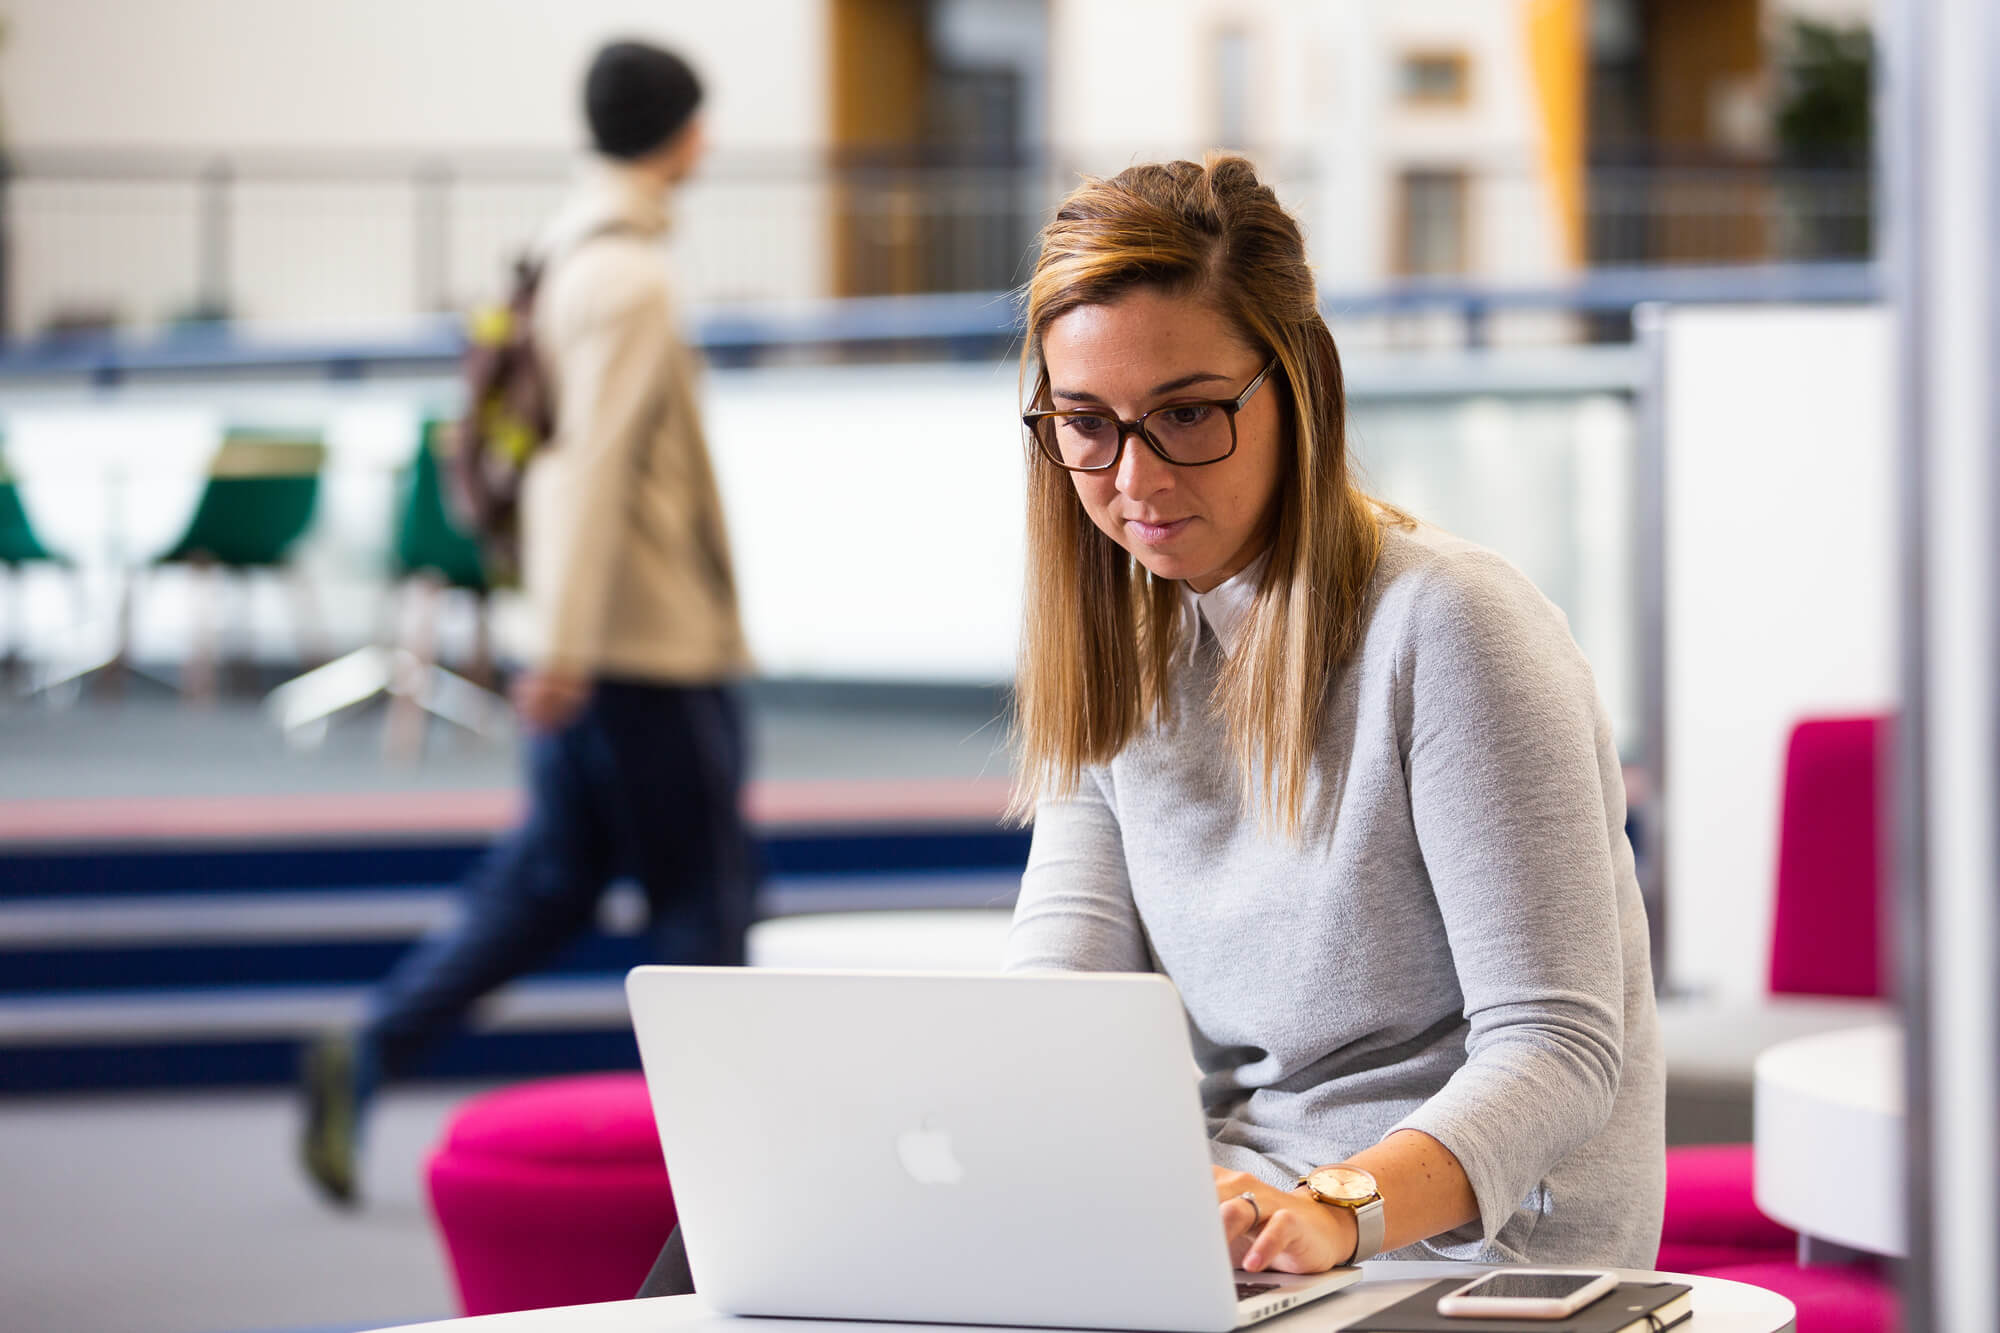 A young woman works on a macbook in the University atrium